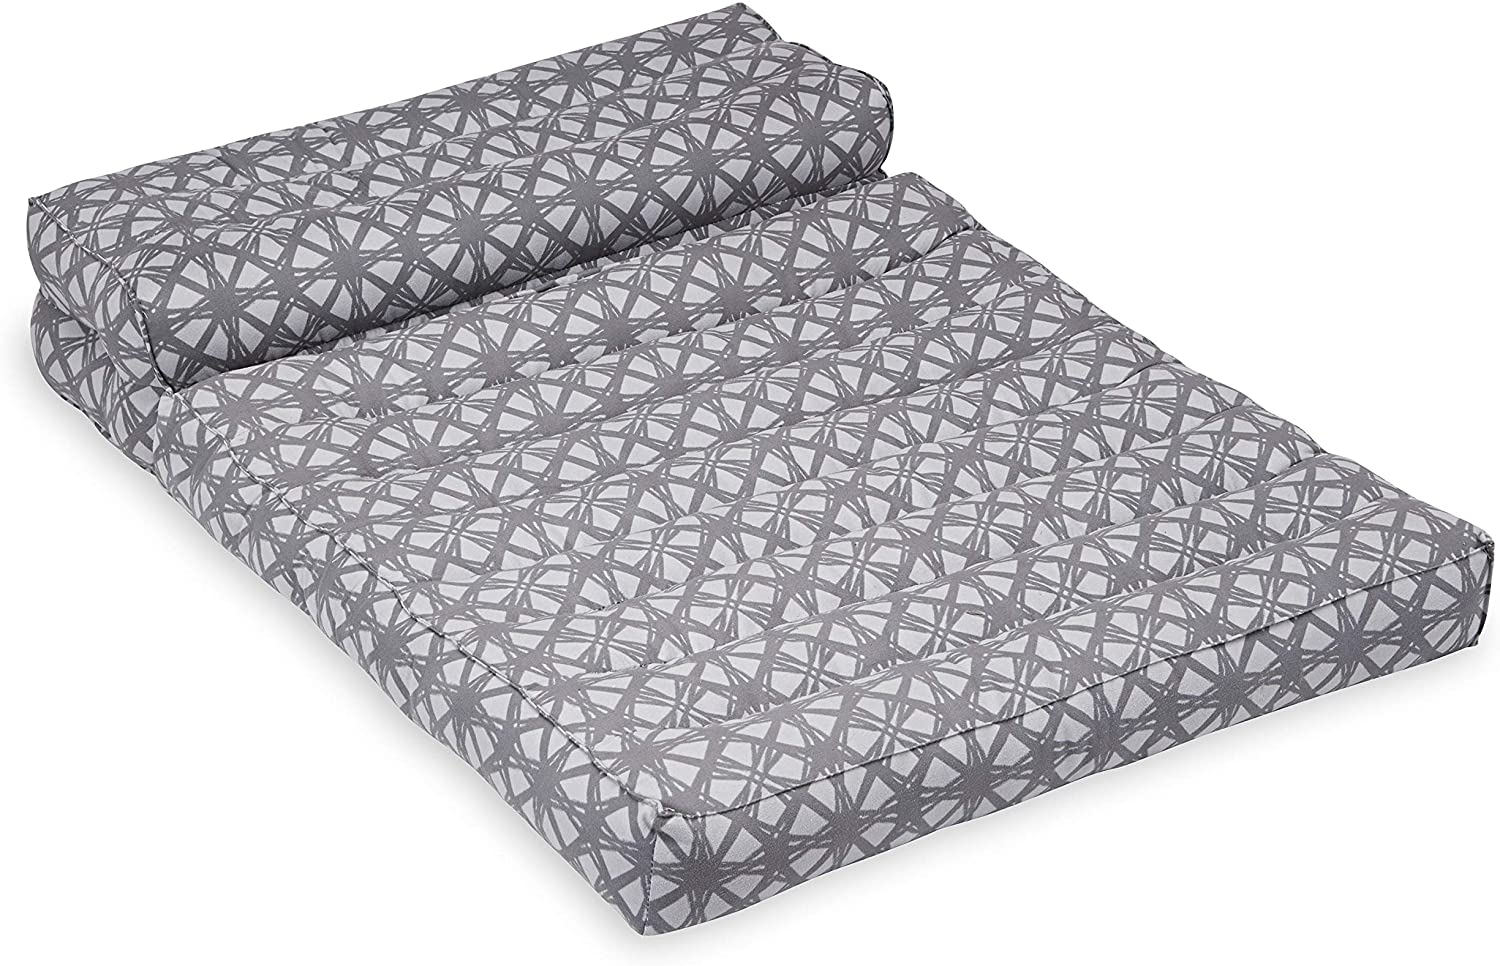 Gaiam Meditation cushion